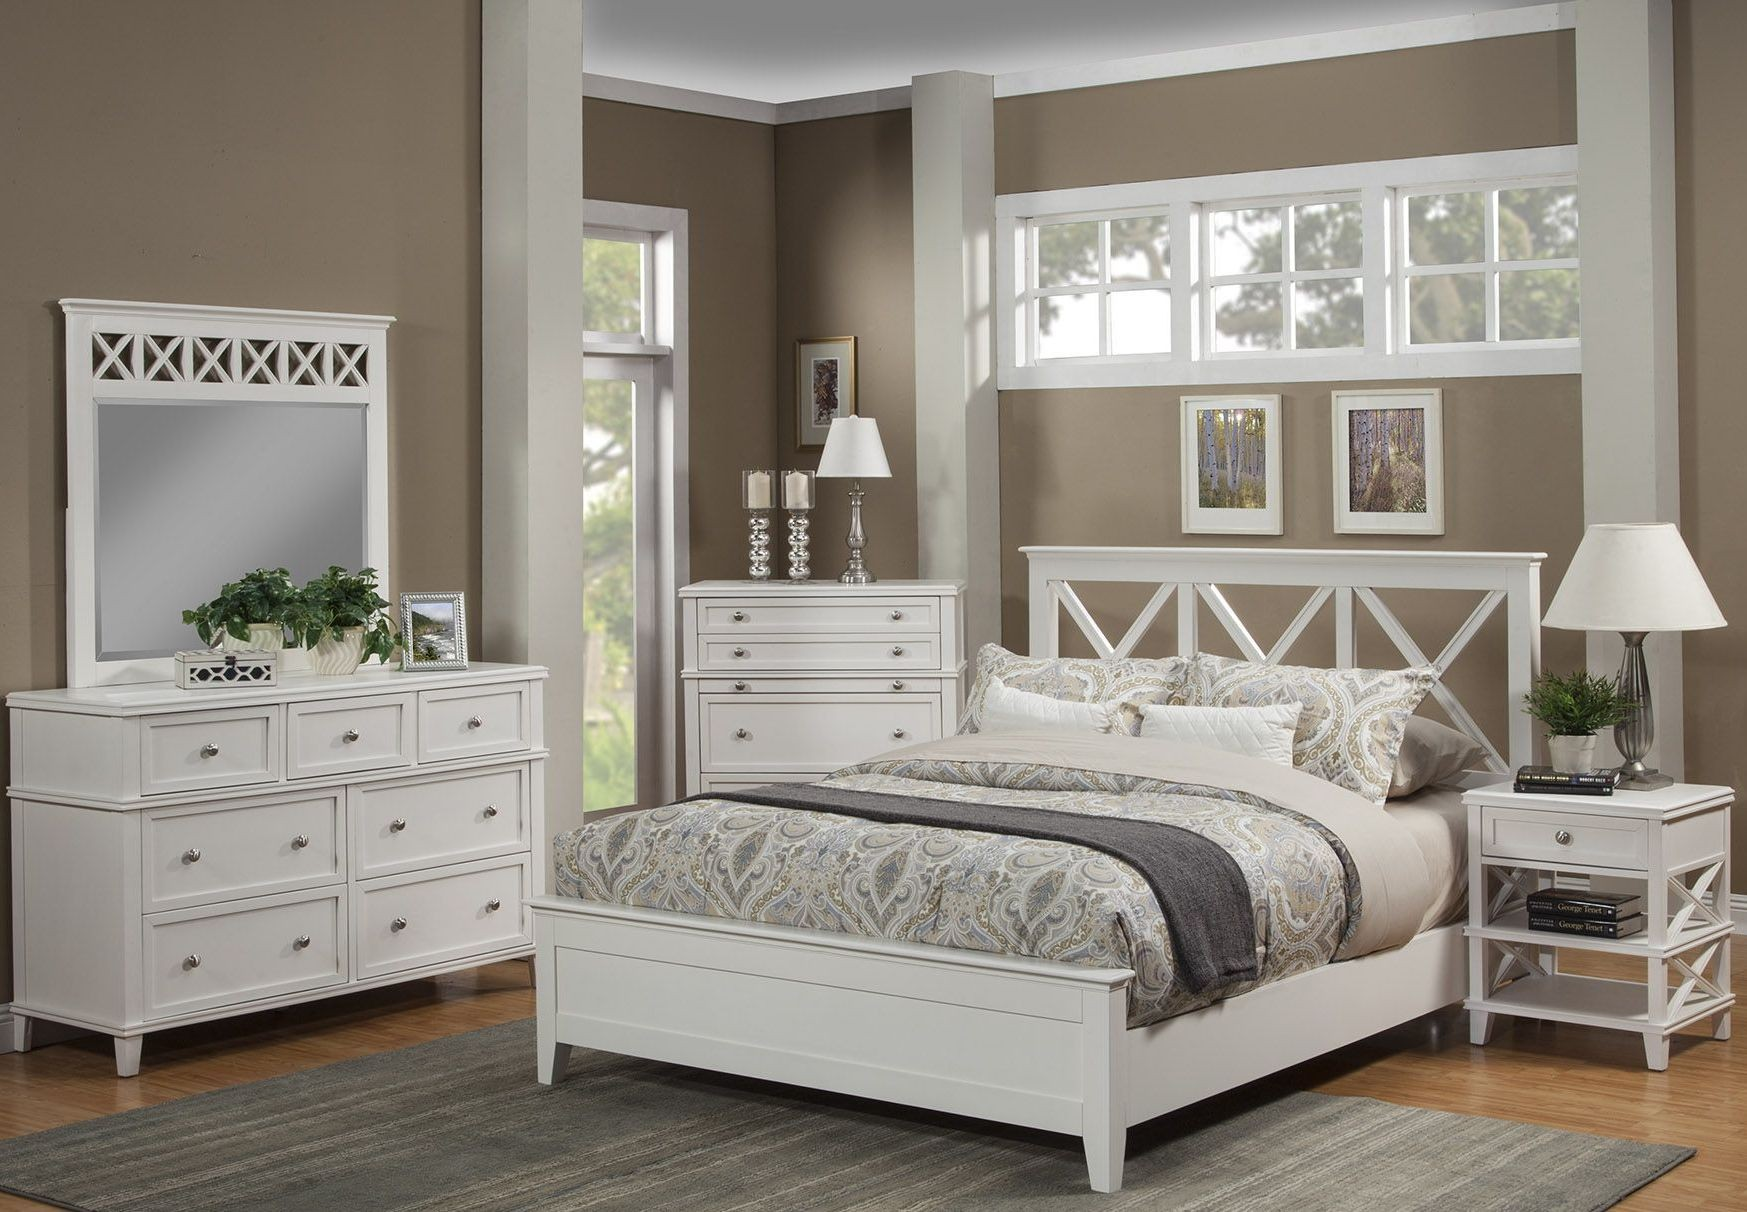 Potter White Youth Panel Bedroom Set From Alpine Coleman Furniture